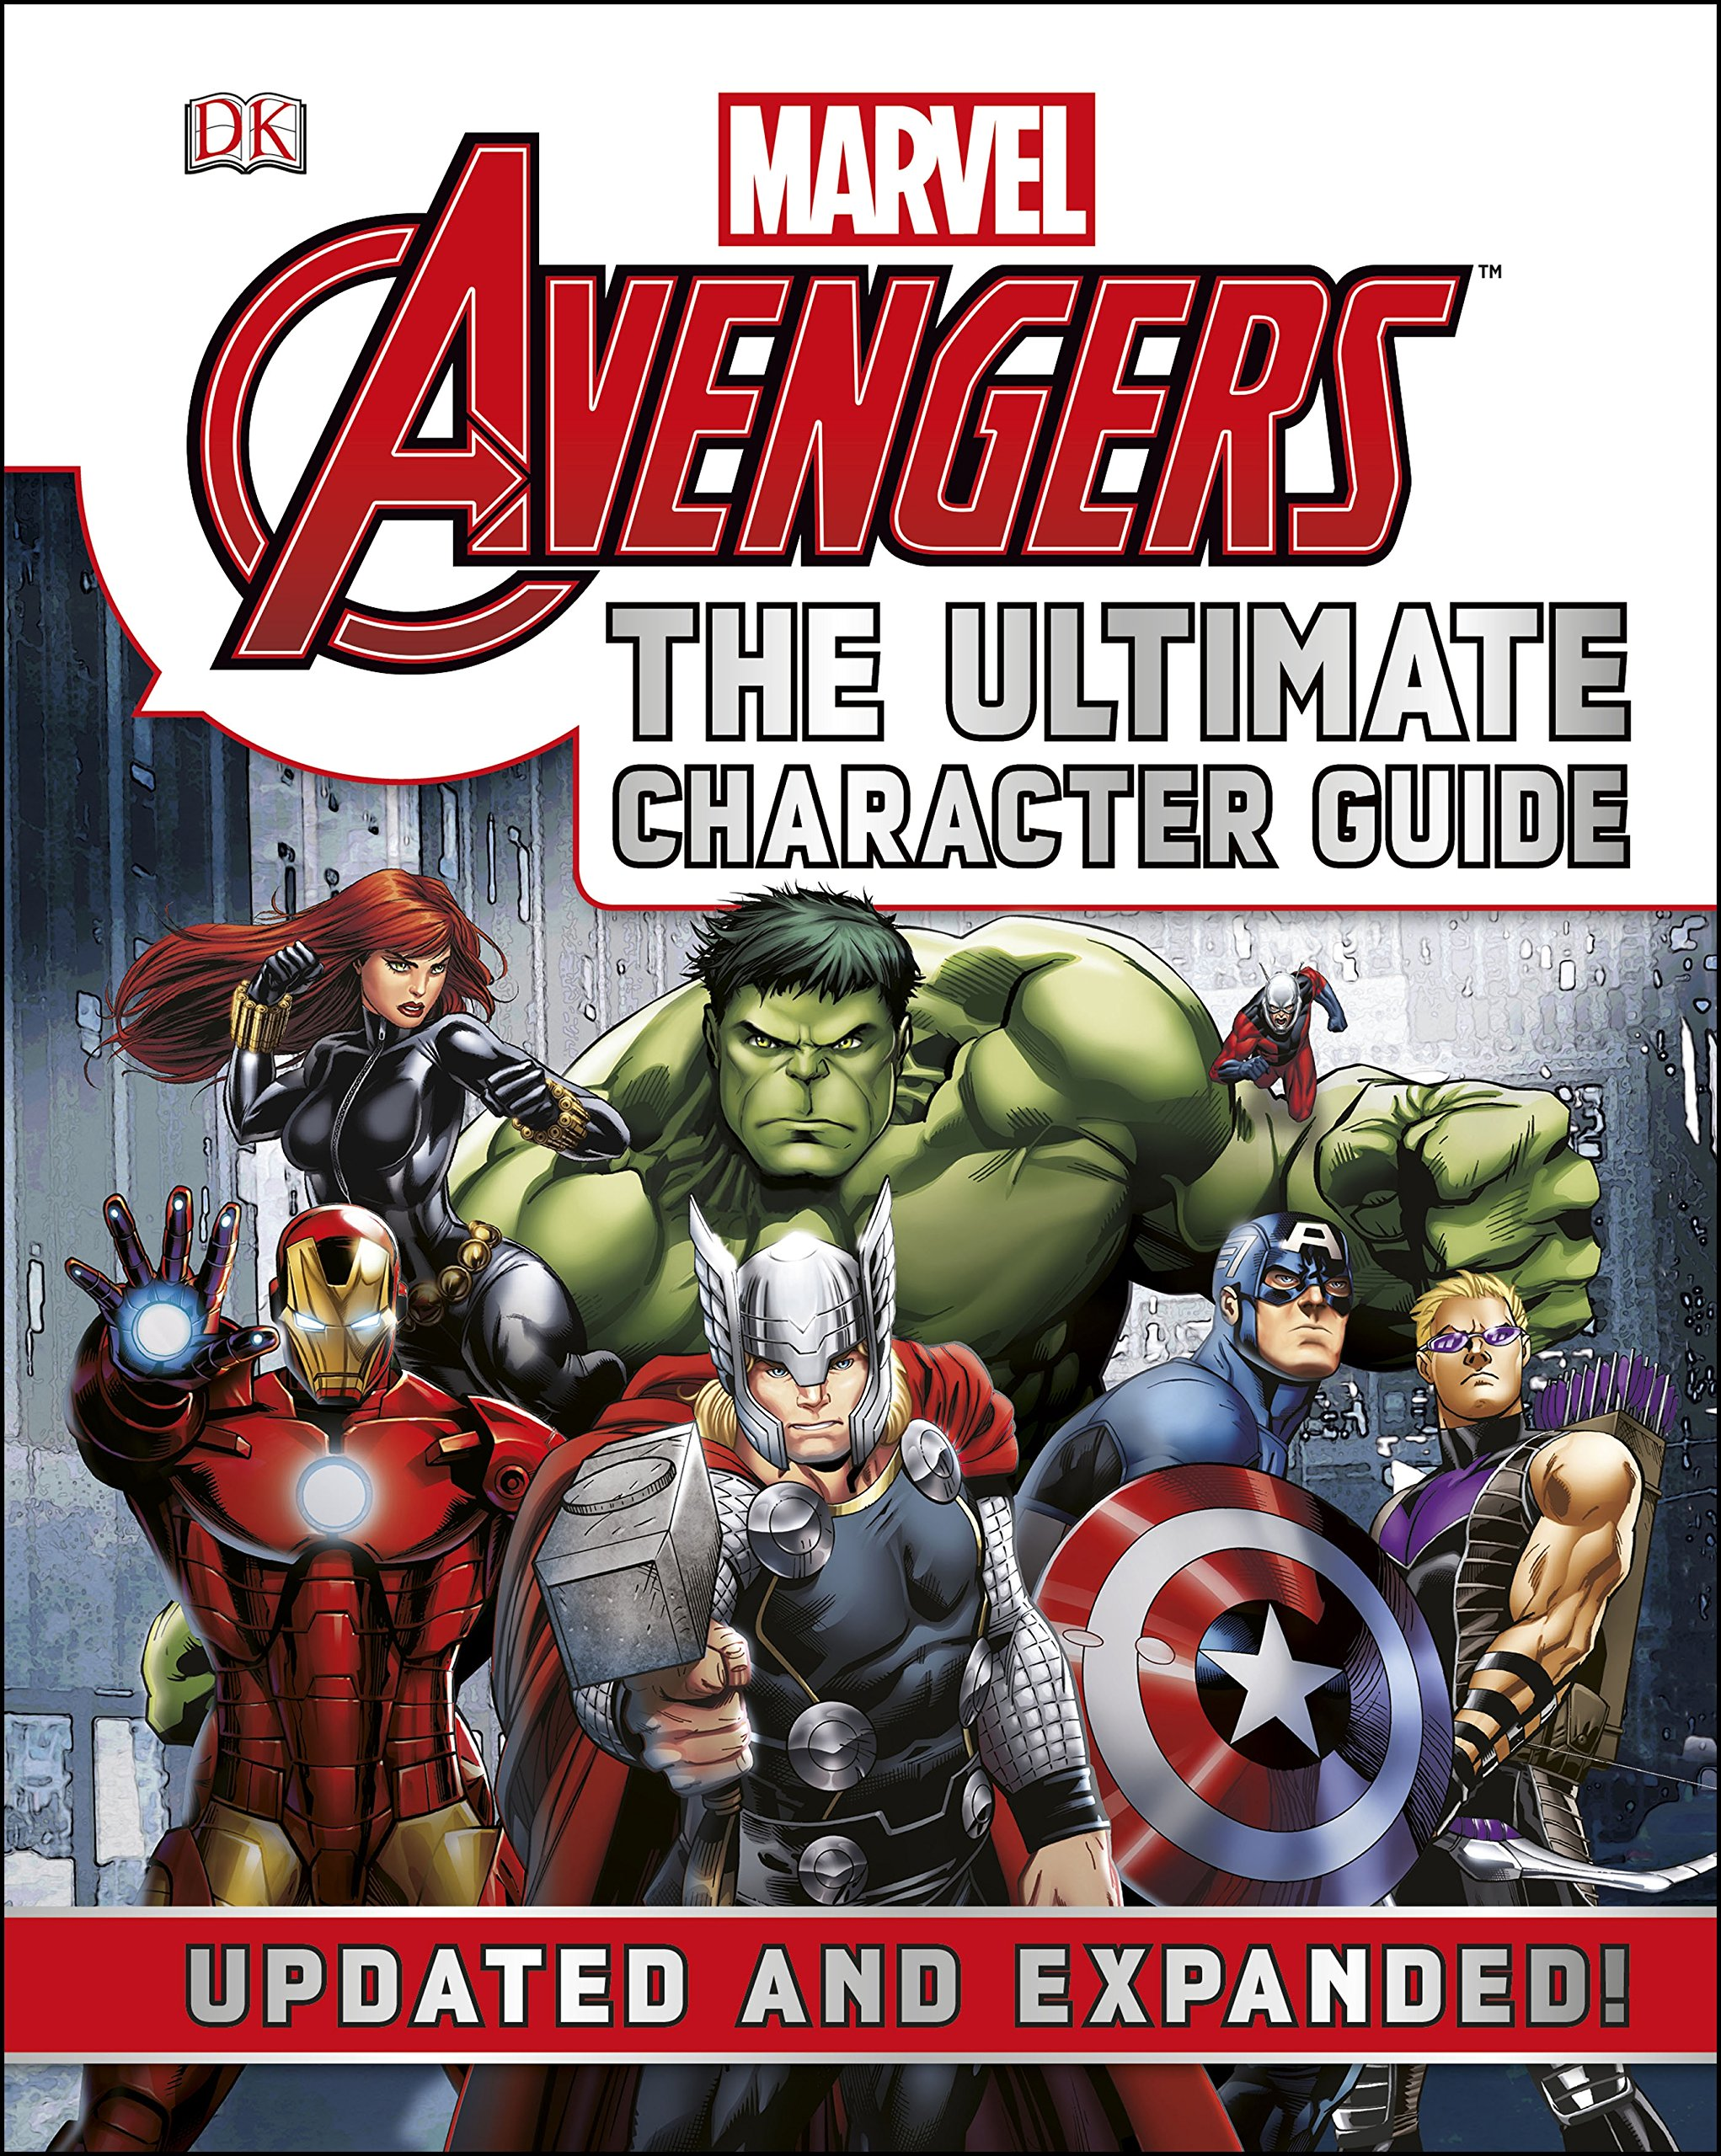 marvel the avengers the ultimate character guide alan cowsill 0790778030018 amazoncom books - Avengers Marvel